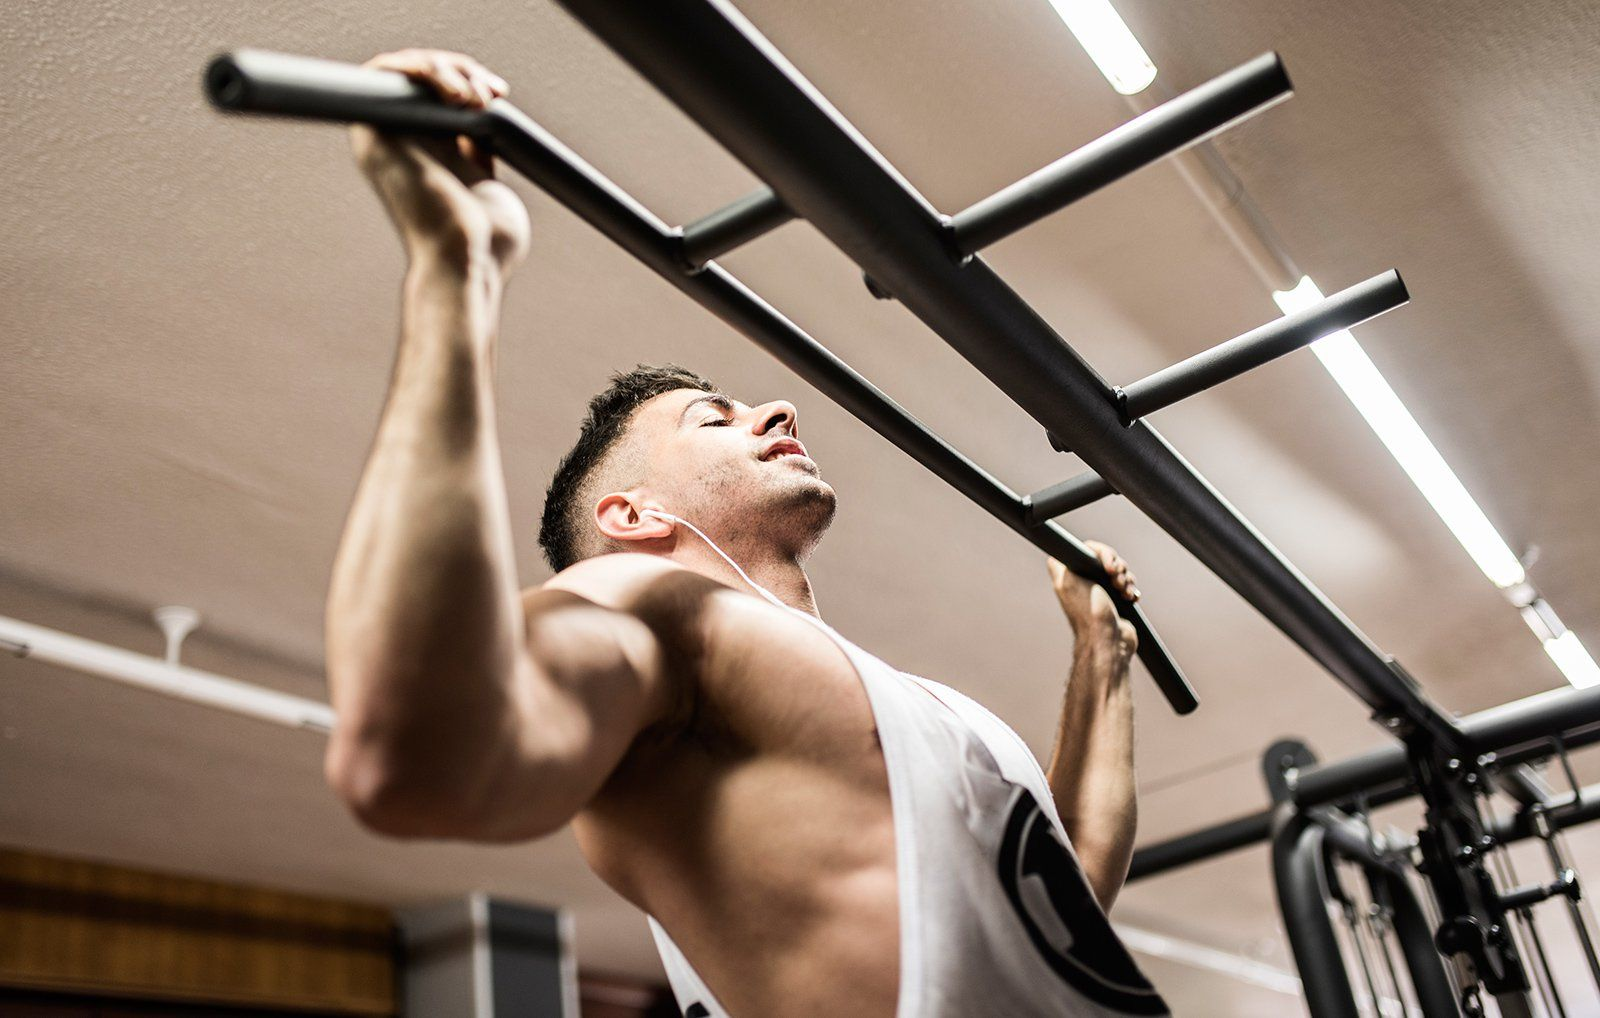 Pull up bar grip positions for sexual health